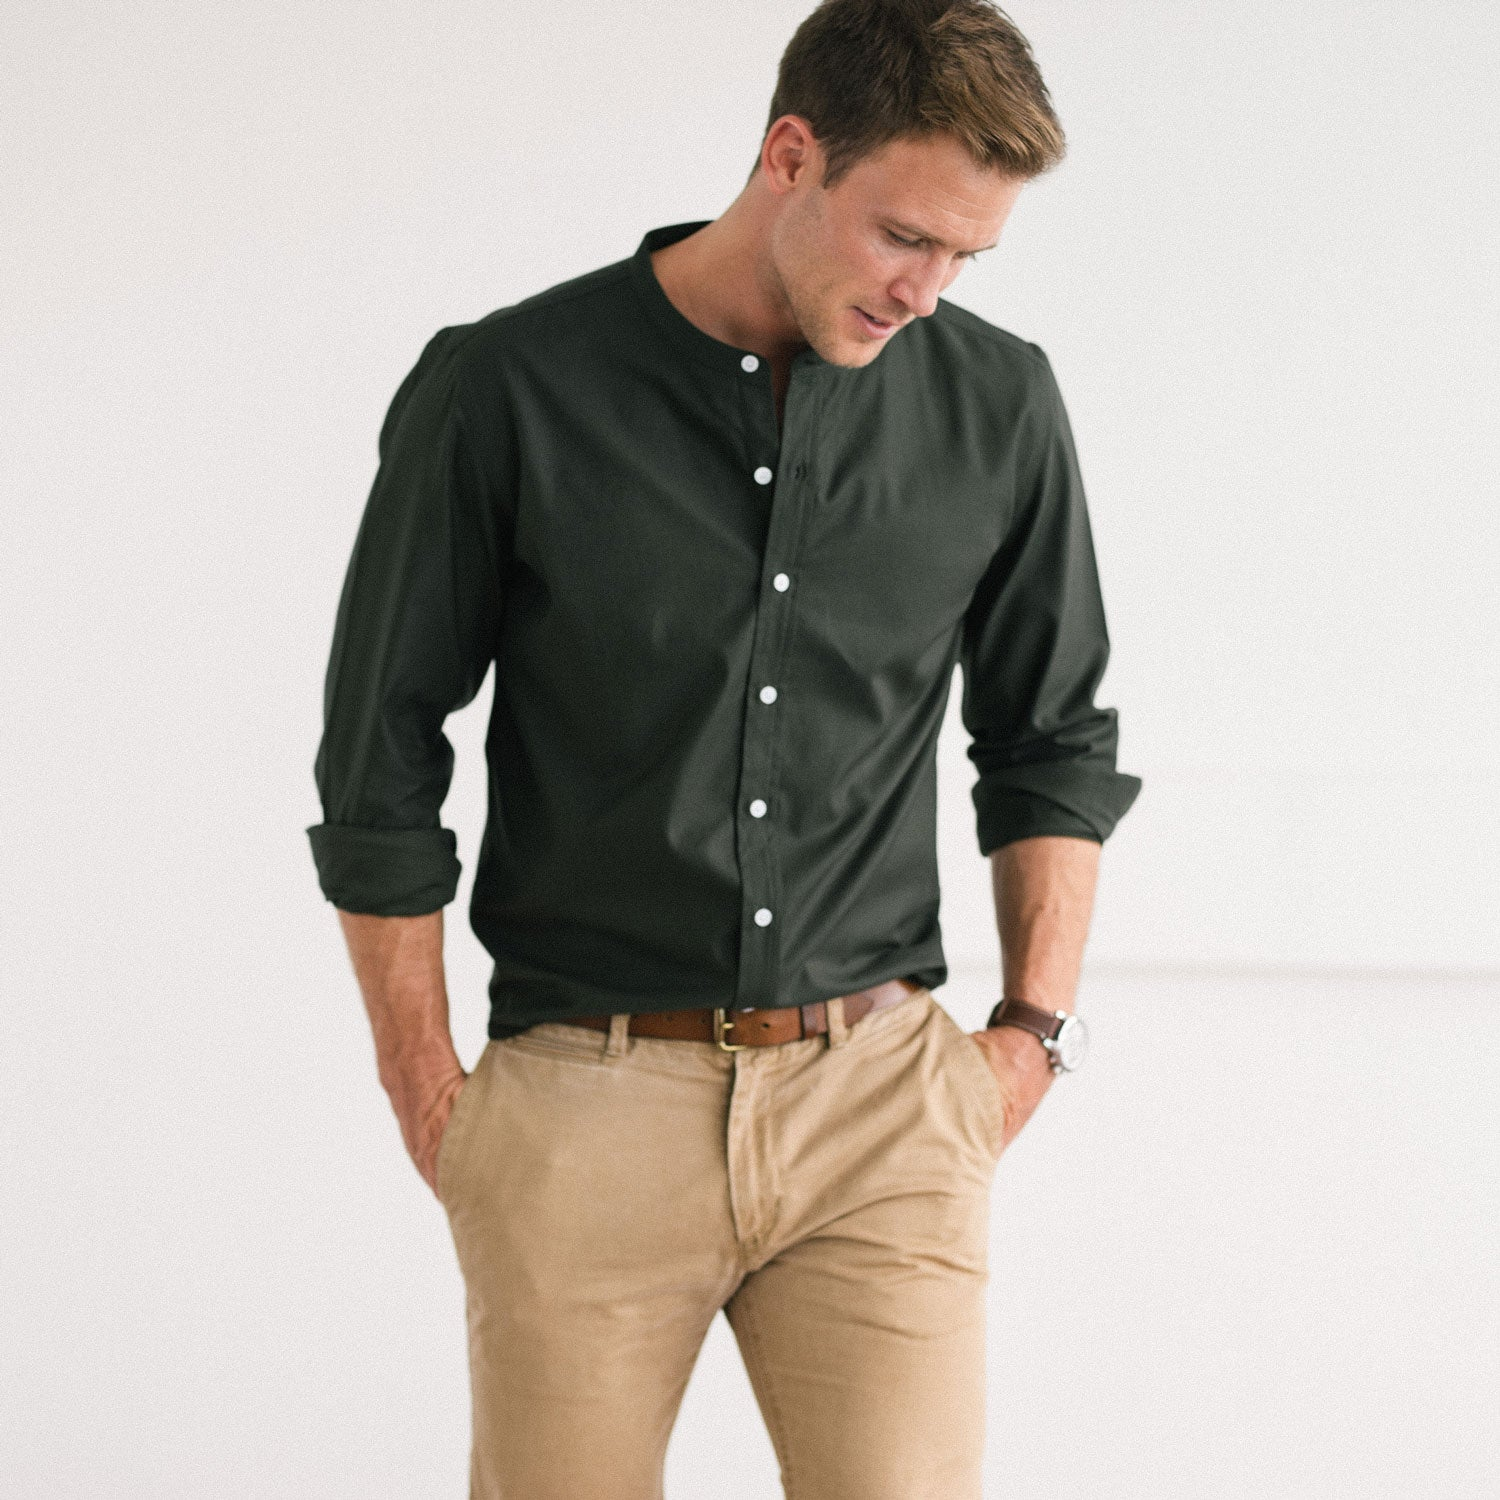 Men's band collar shirt in olive green with chinos image